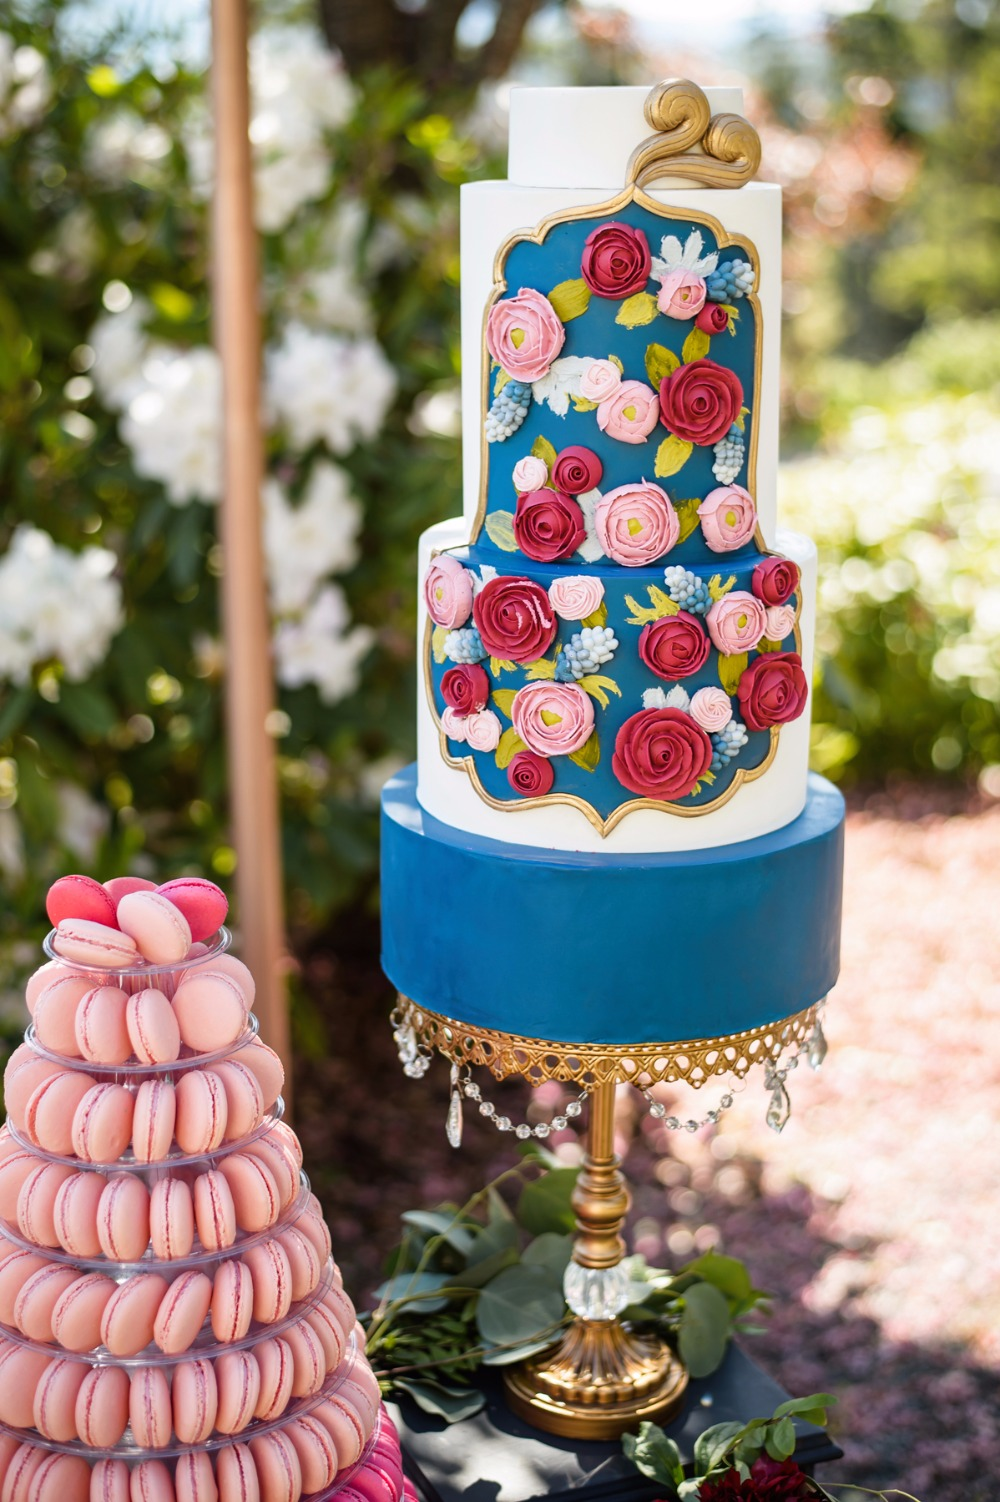 12_a-colorful-over-the-top-wedding-inspired-by-marie-antoinette.jpg